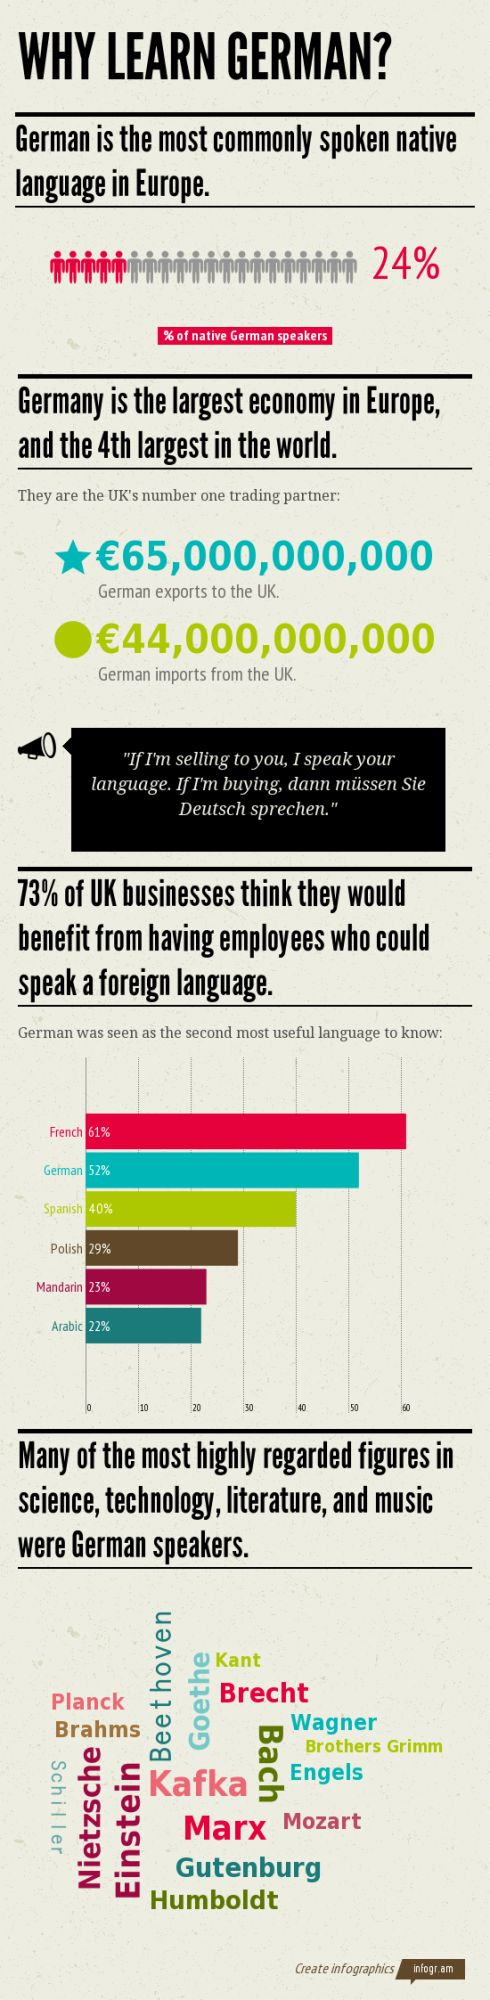 Since 1997 the number of school children not studying a foreign language at GCSE has more than doubled. Is there any point learning another language? The answer is a resounding yes! Here's a handy infographic for you on why you should learn German, hope you enjoy! To find out more about learning German visit http://www.thetutorpages.com/subject/german-tutors/german-lessons/214